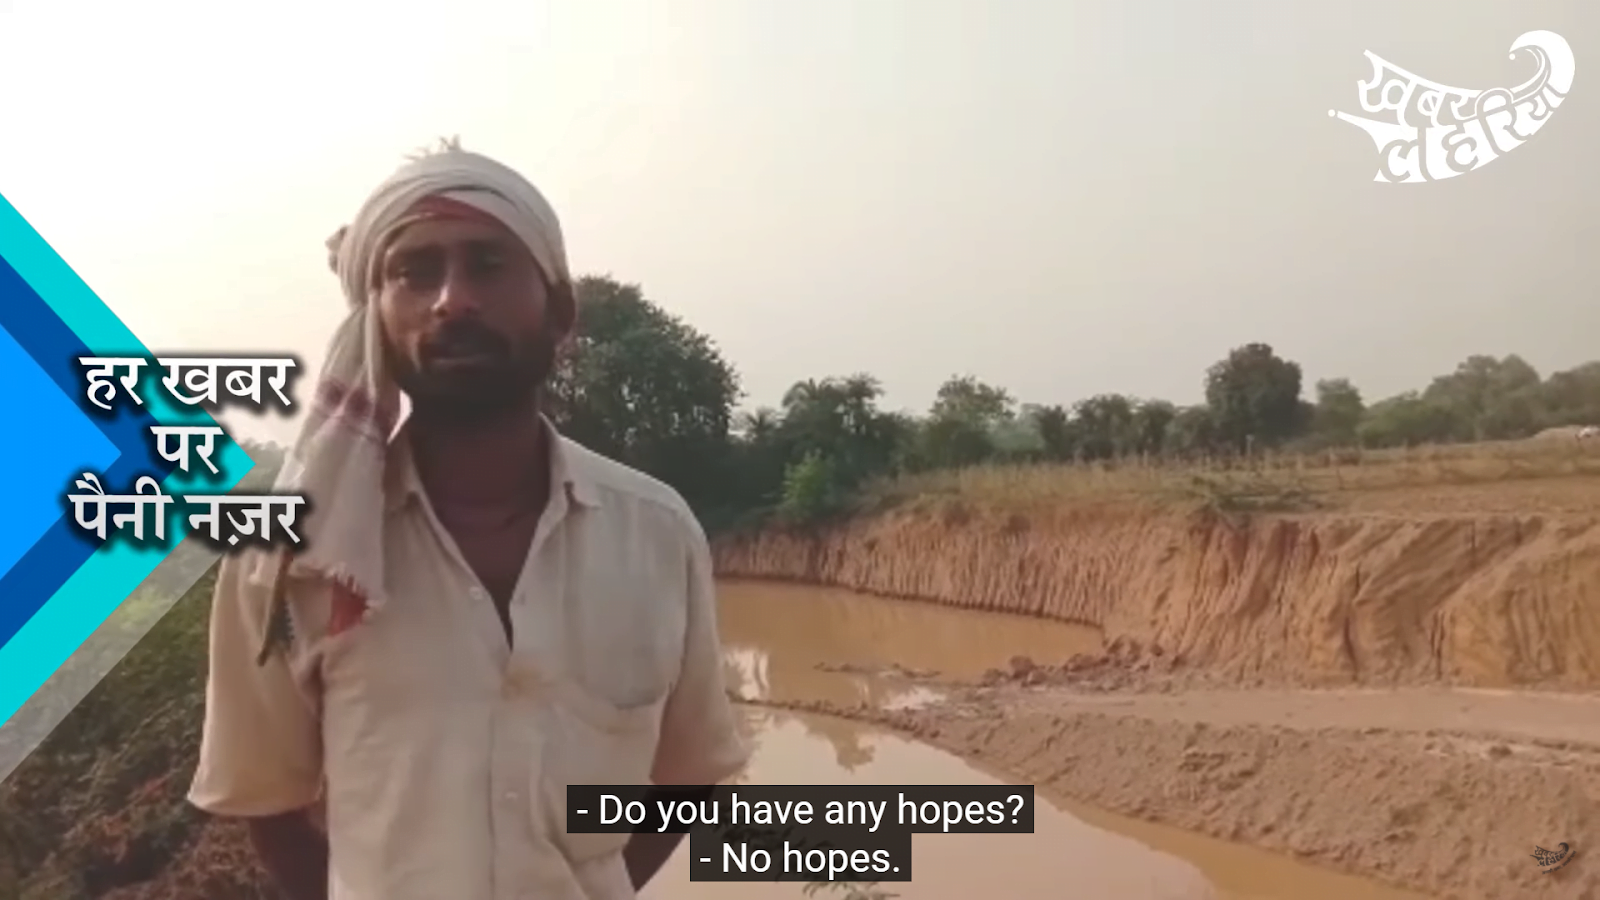 Farmer Yuvraj Yadav has no illusions about fair treatment or compensation for his land from the U.P. state government